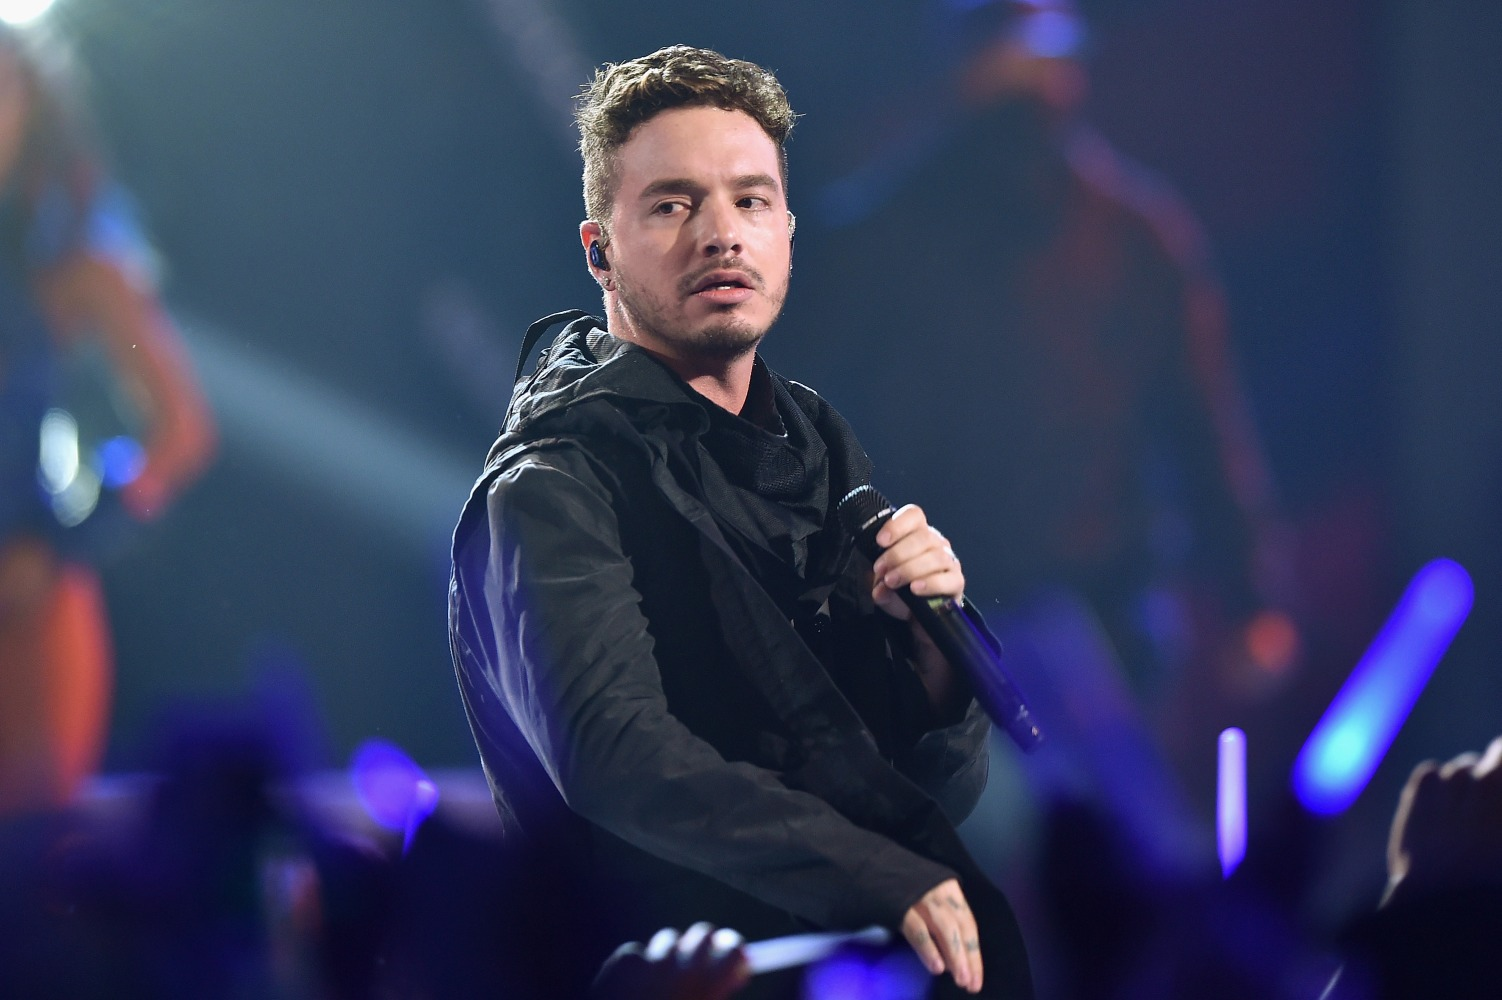 J Balvin: J Balvin Earns Guinness World Record For His Song 'Ginza